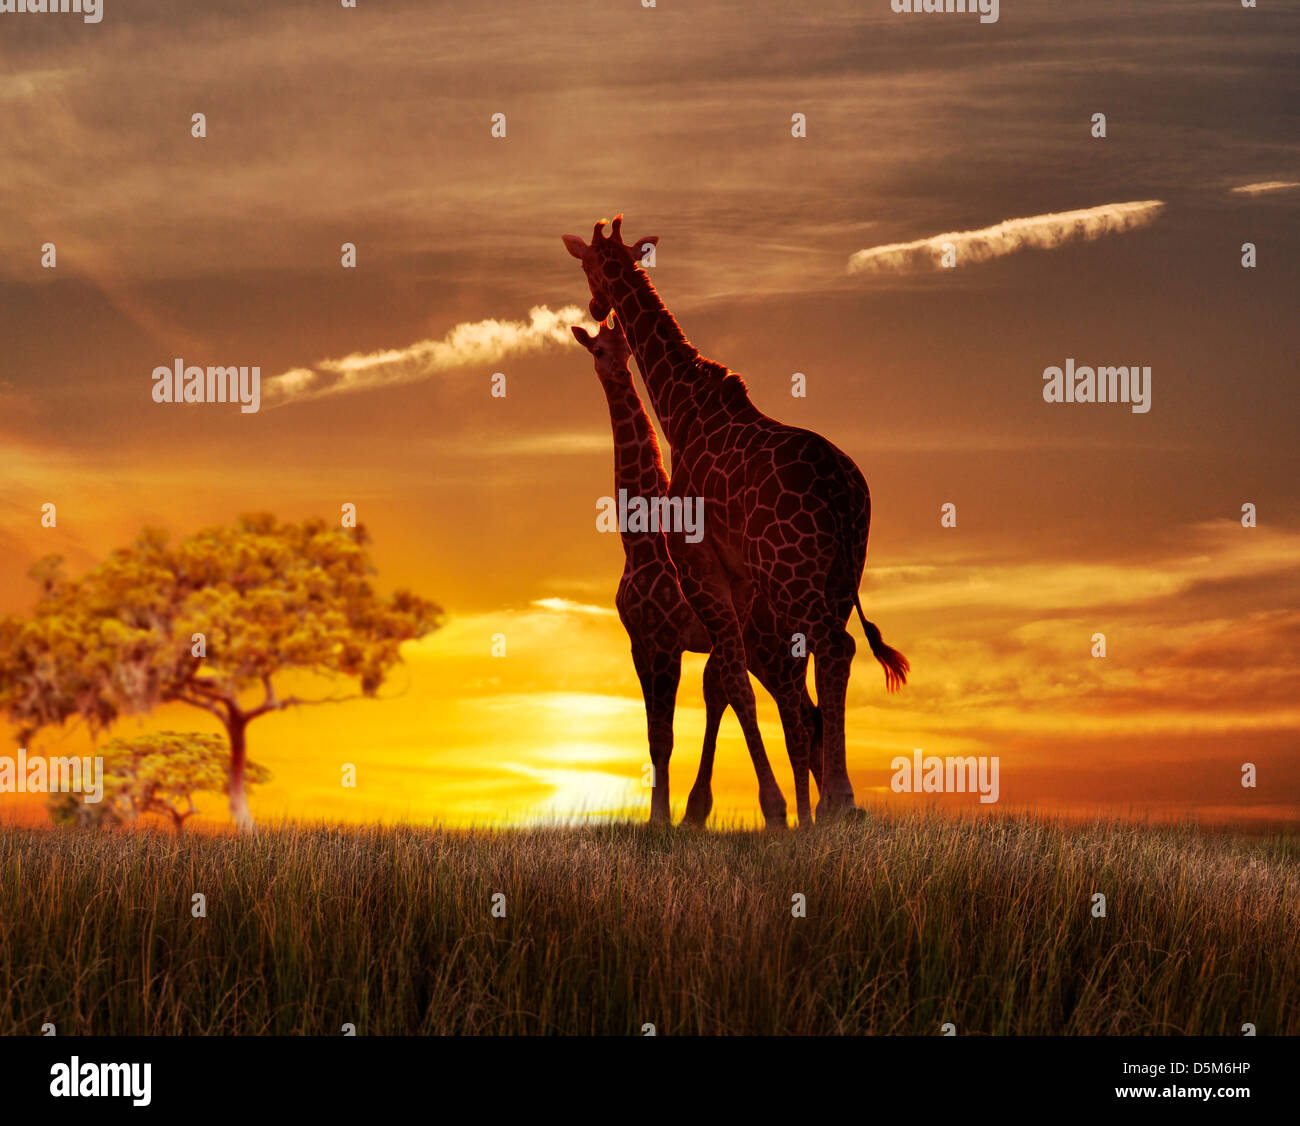 Two Giraffes Against The Sunset On A Hill - Stock Image